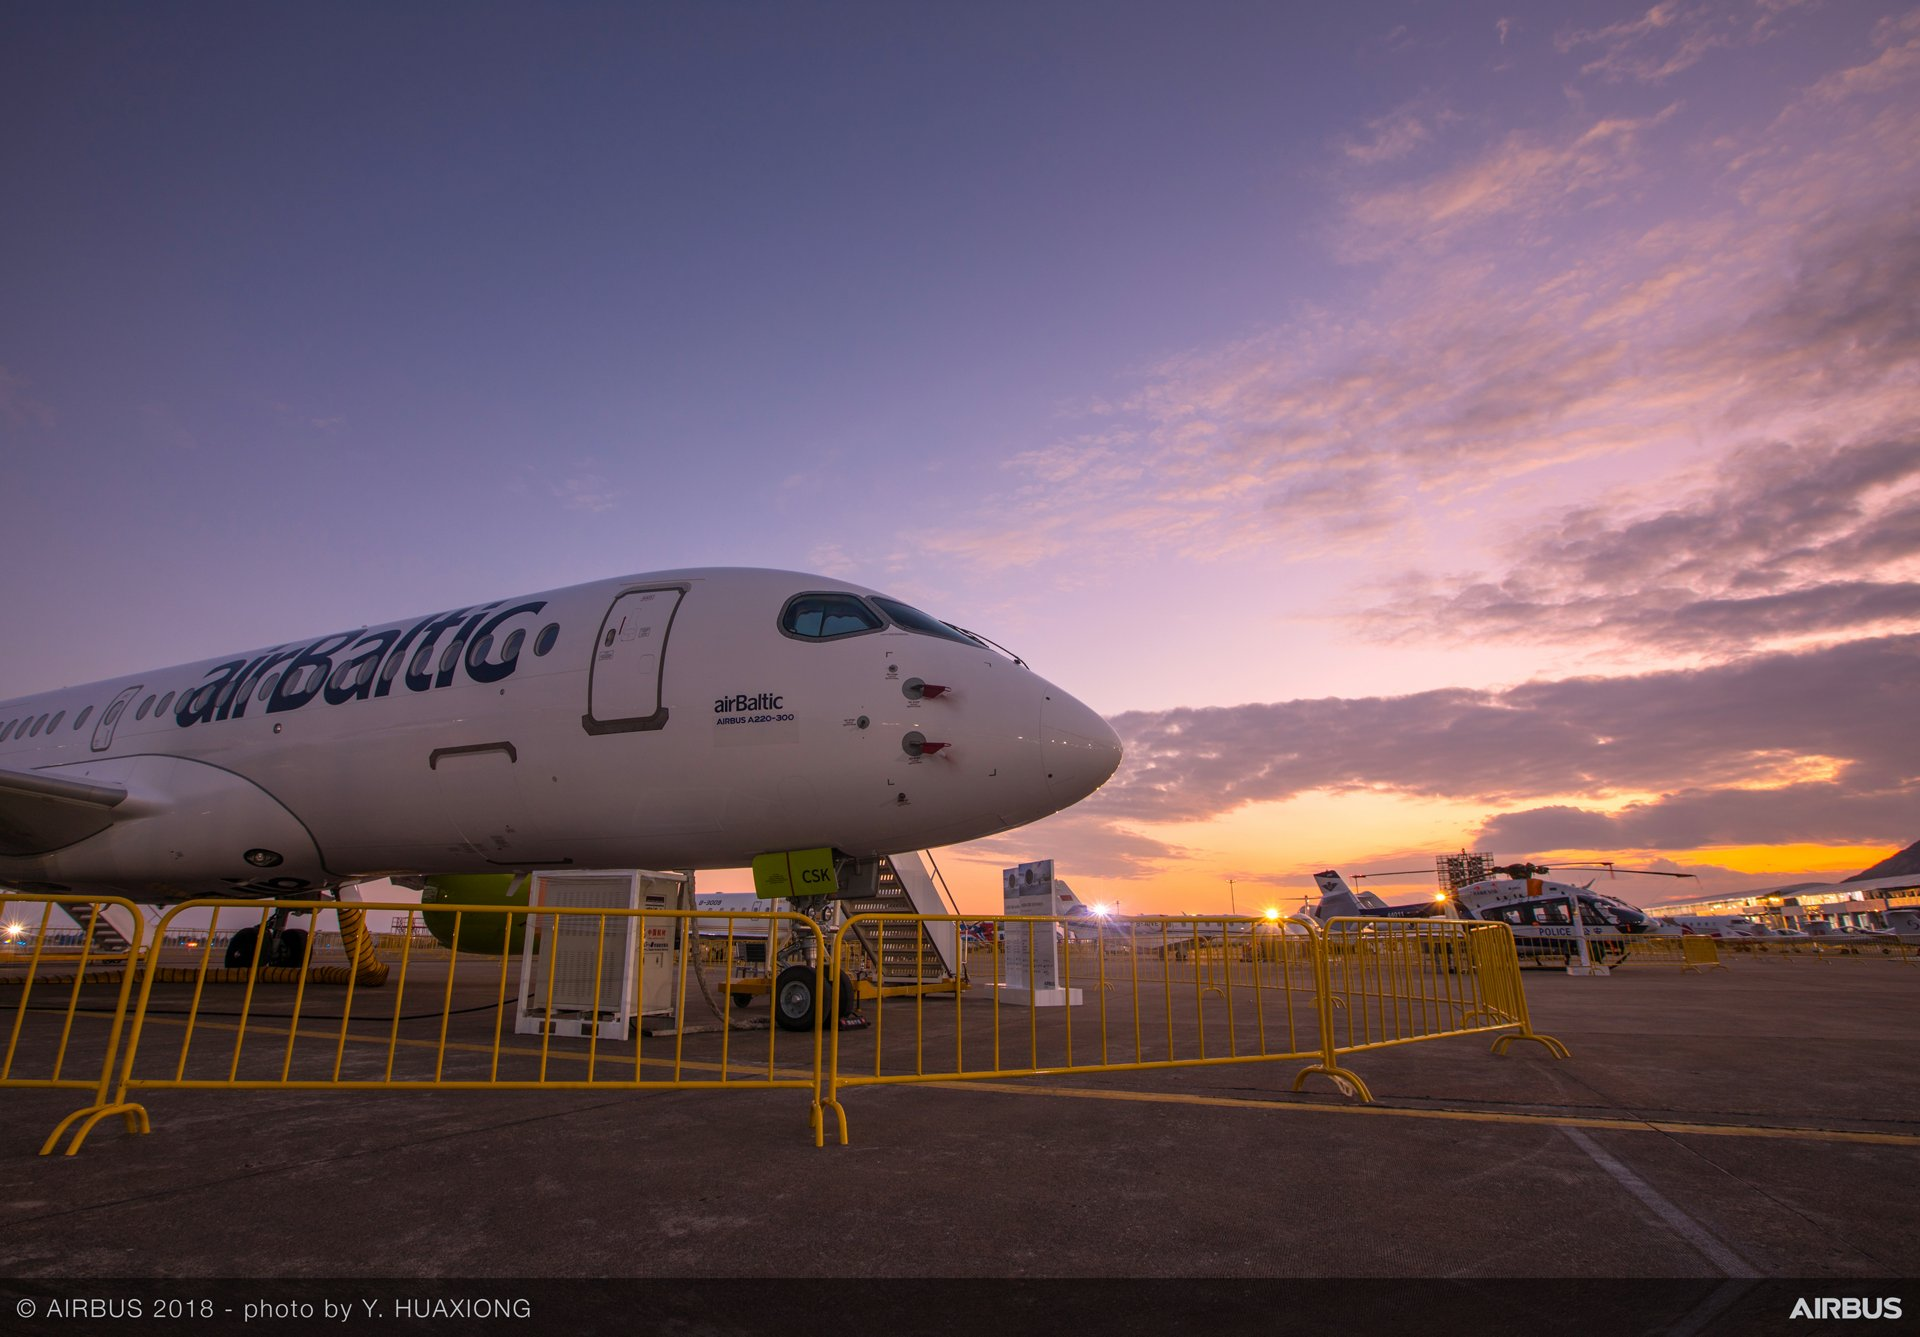 A220-300 Air Baltic on ground with sunset